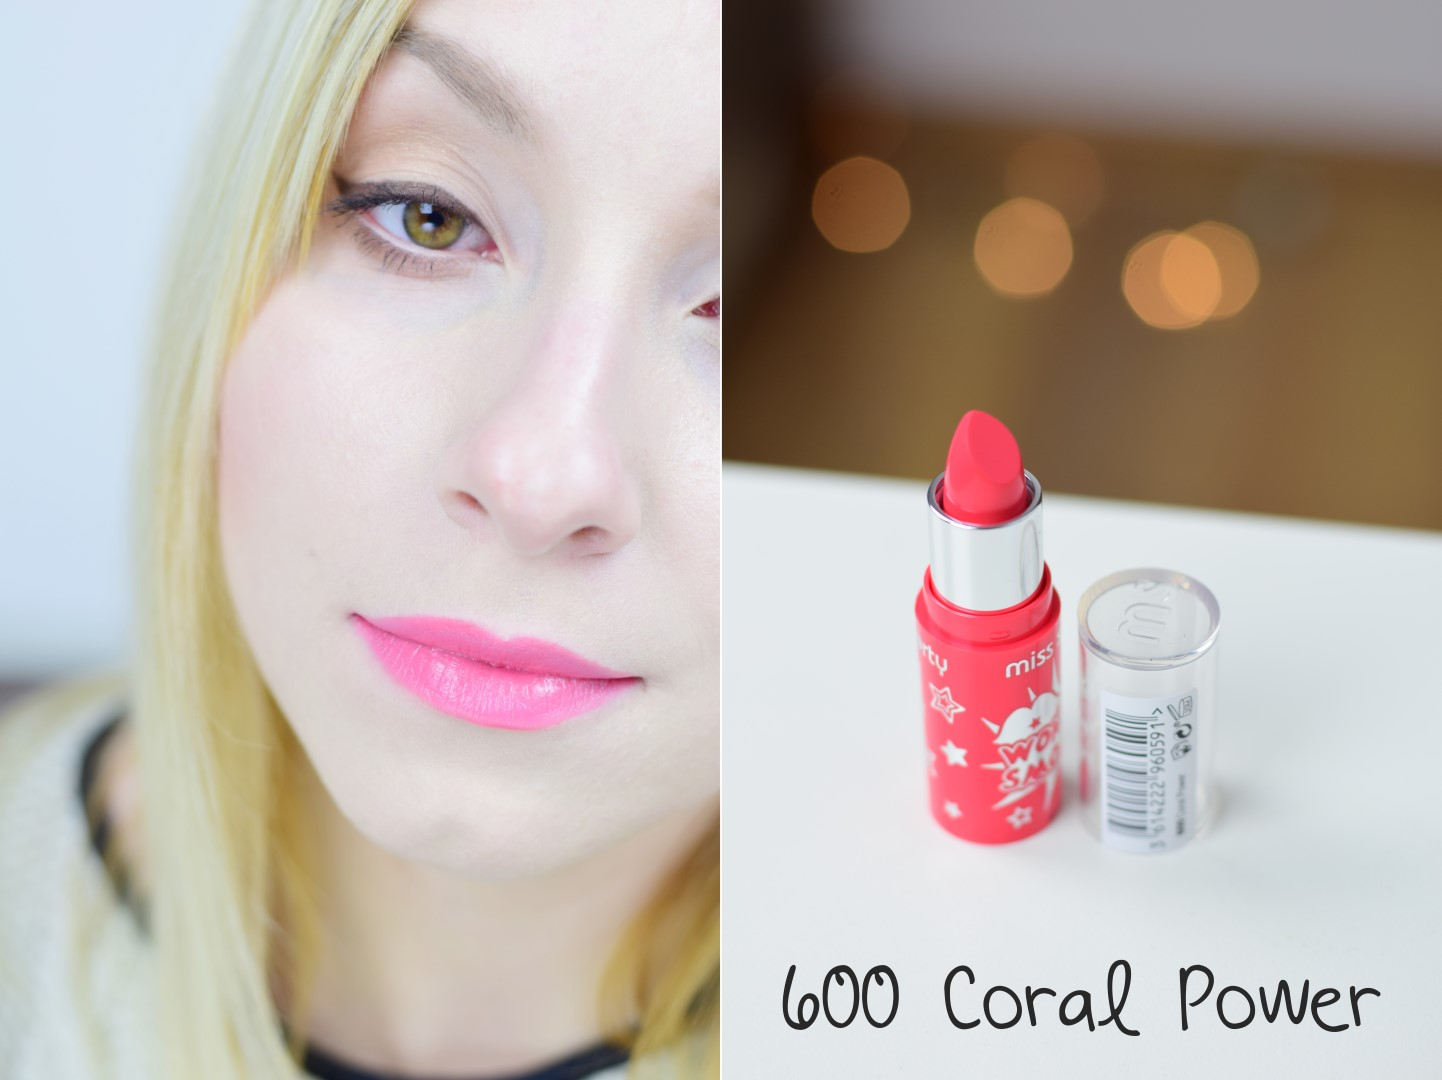 miss_sporty_wonder_smooth_blog_opinia_recenzja_swatche_coral_power_600